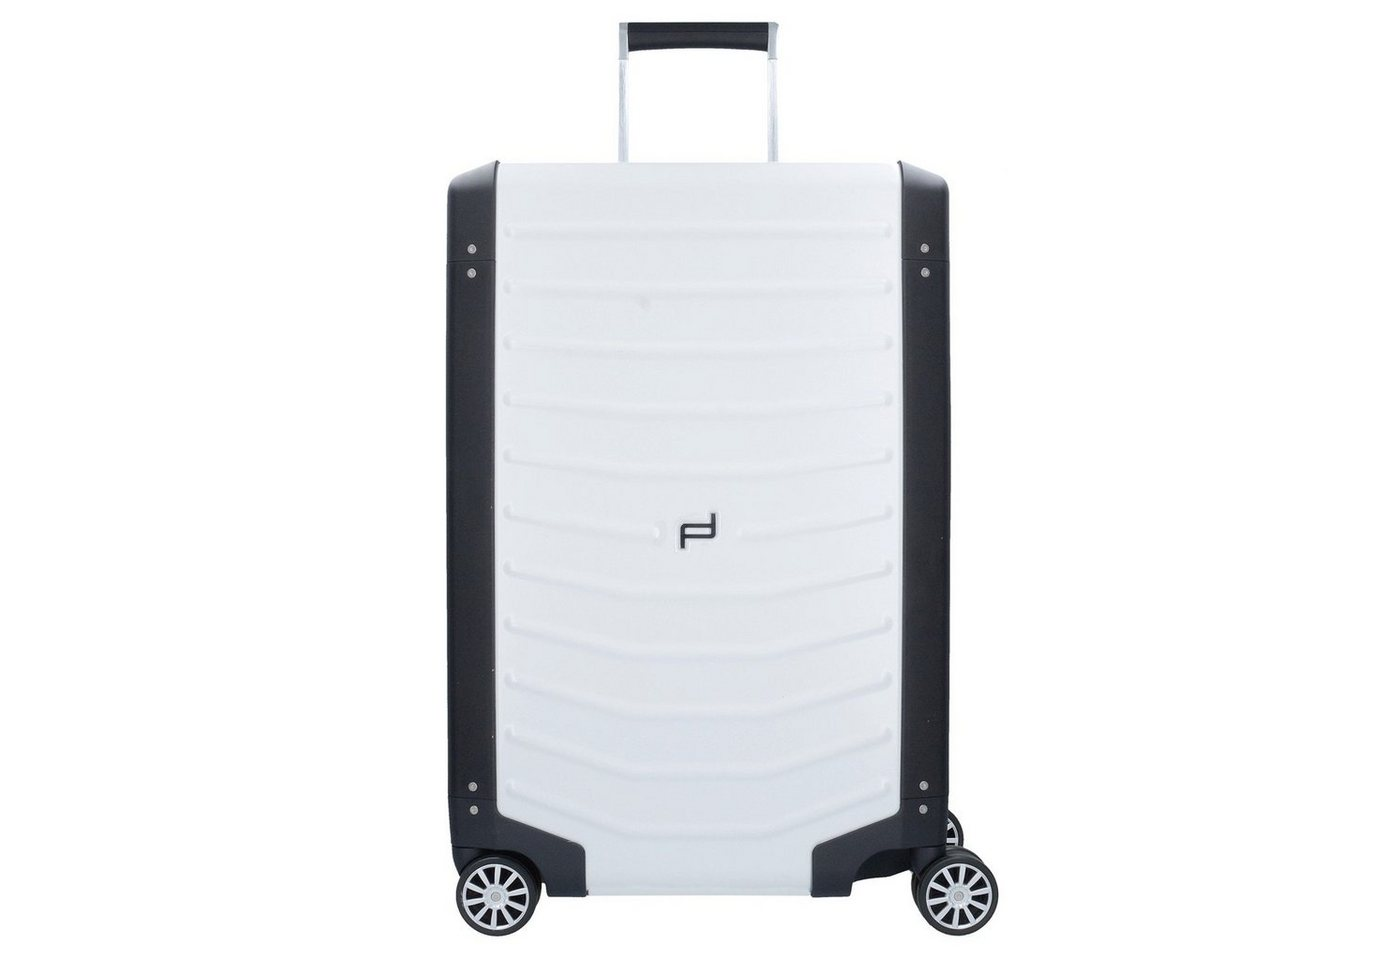 PORSCHE Design Roadster HC 670 4-Rollen Trolley 67 cm | Taschen > Koffer & Trolleys > Trolleys | Weiß | PORSCHE Design